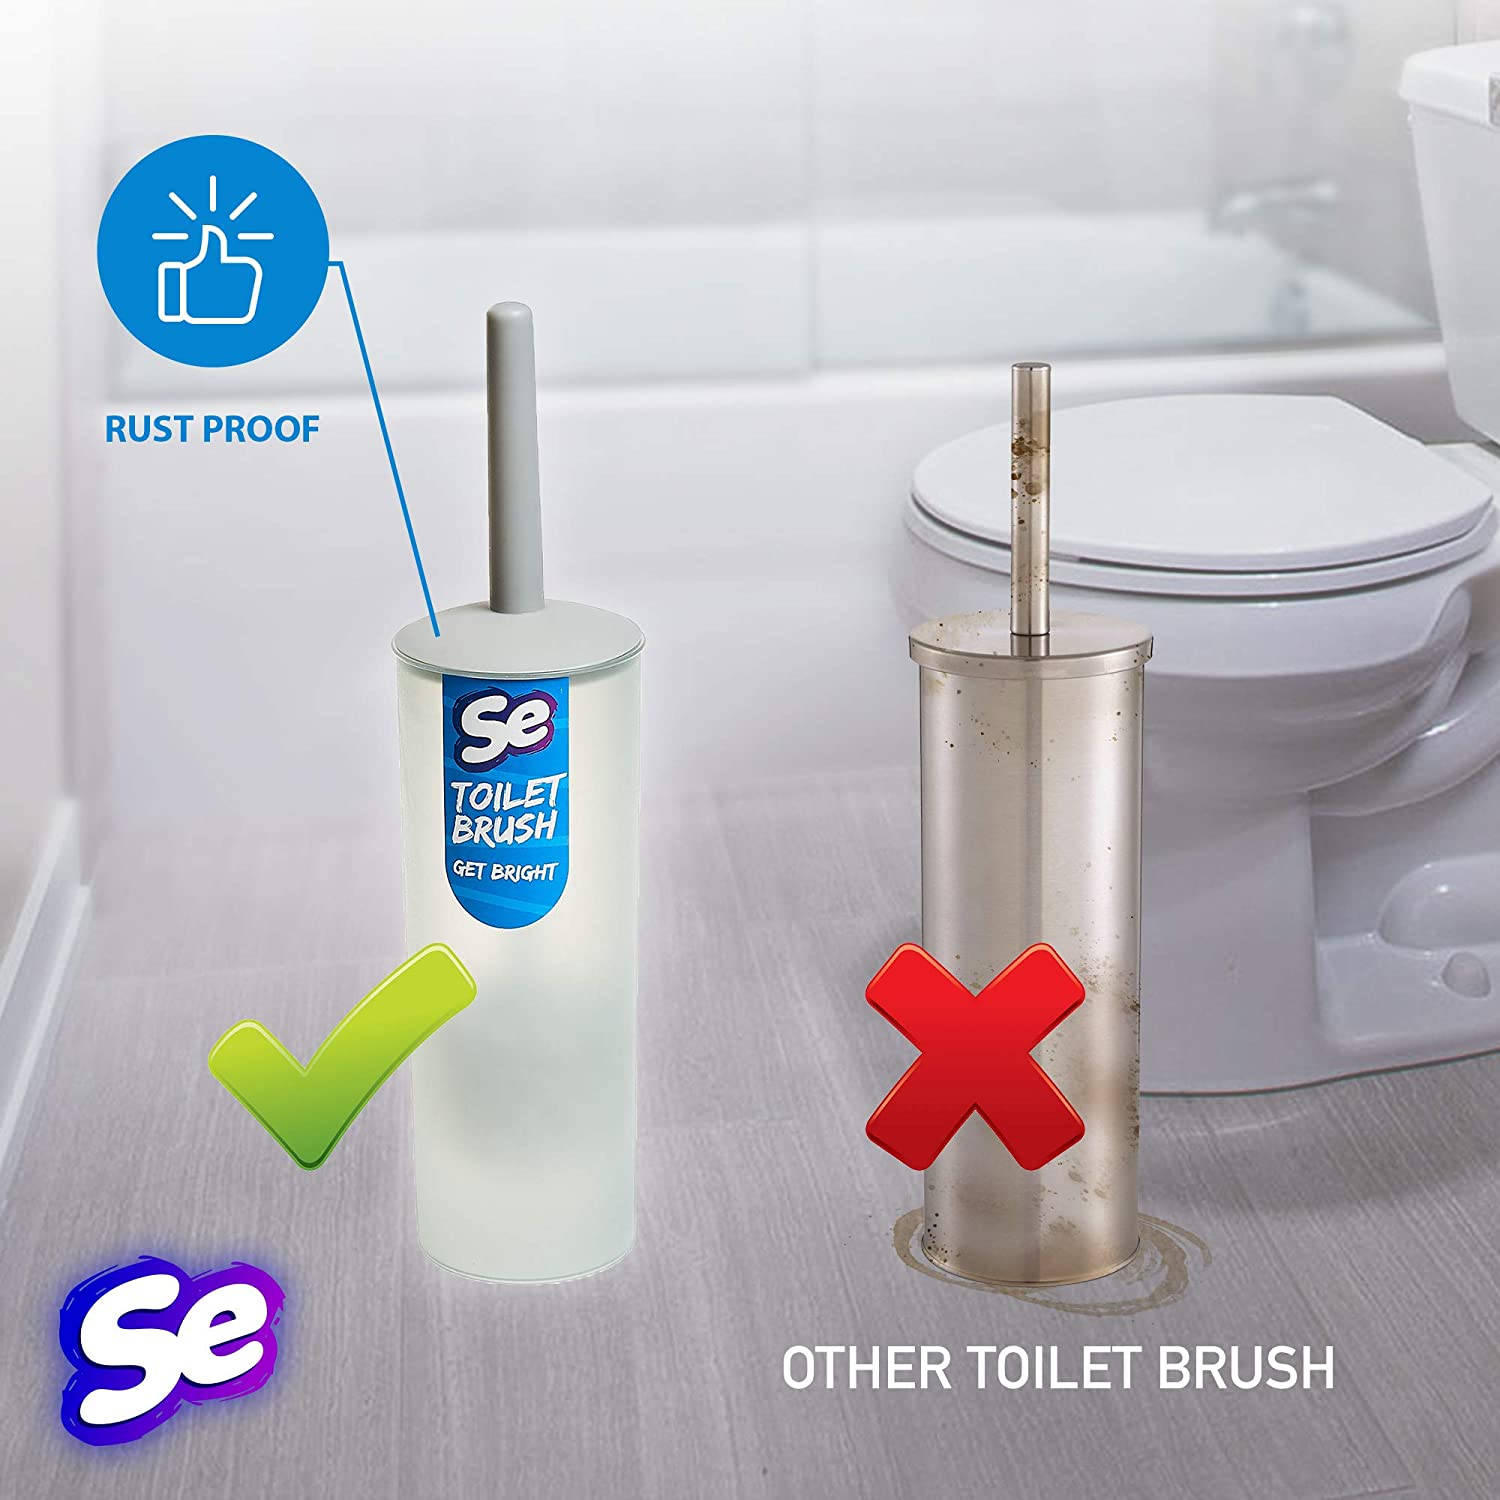 b3b84dac980 Toilet Brush Holder – Toilet Bowl Brush Set - Commercial Toilet ...